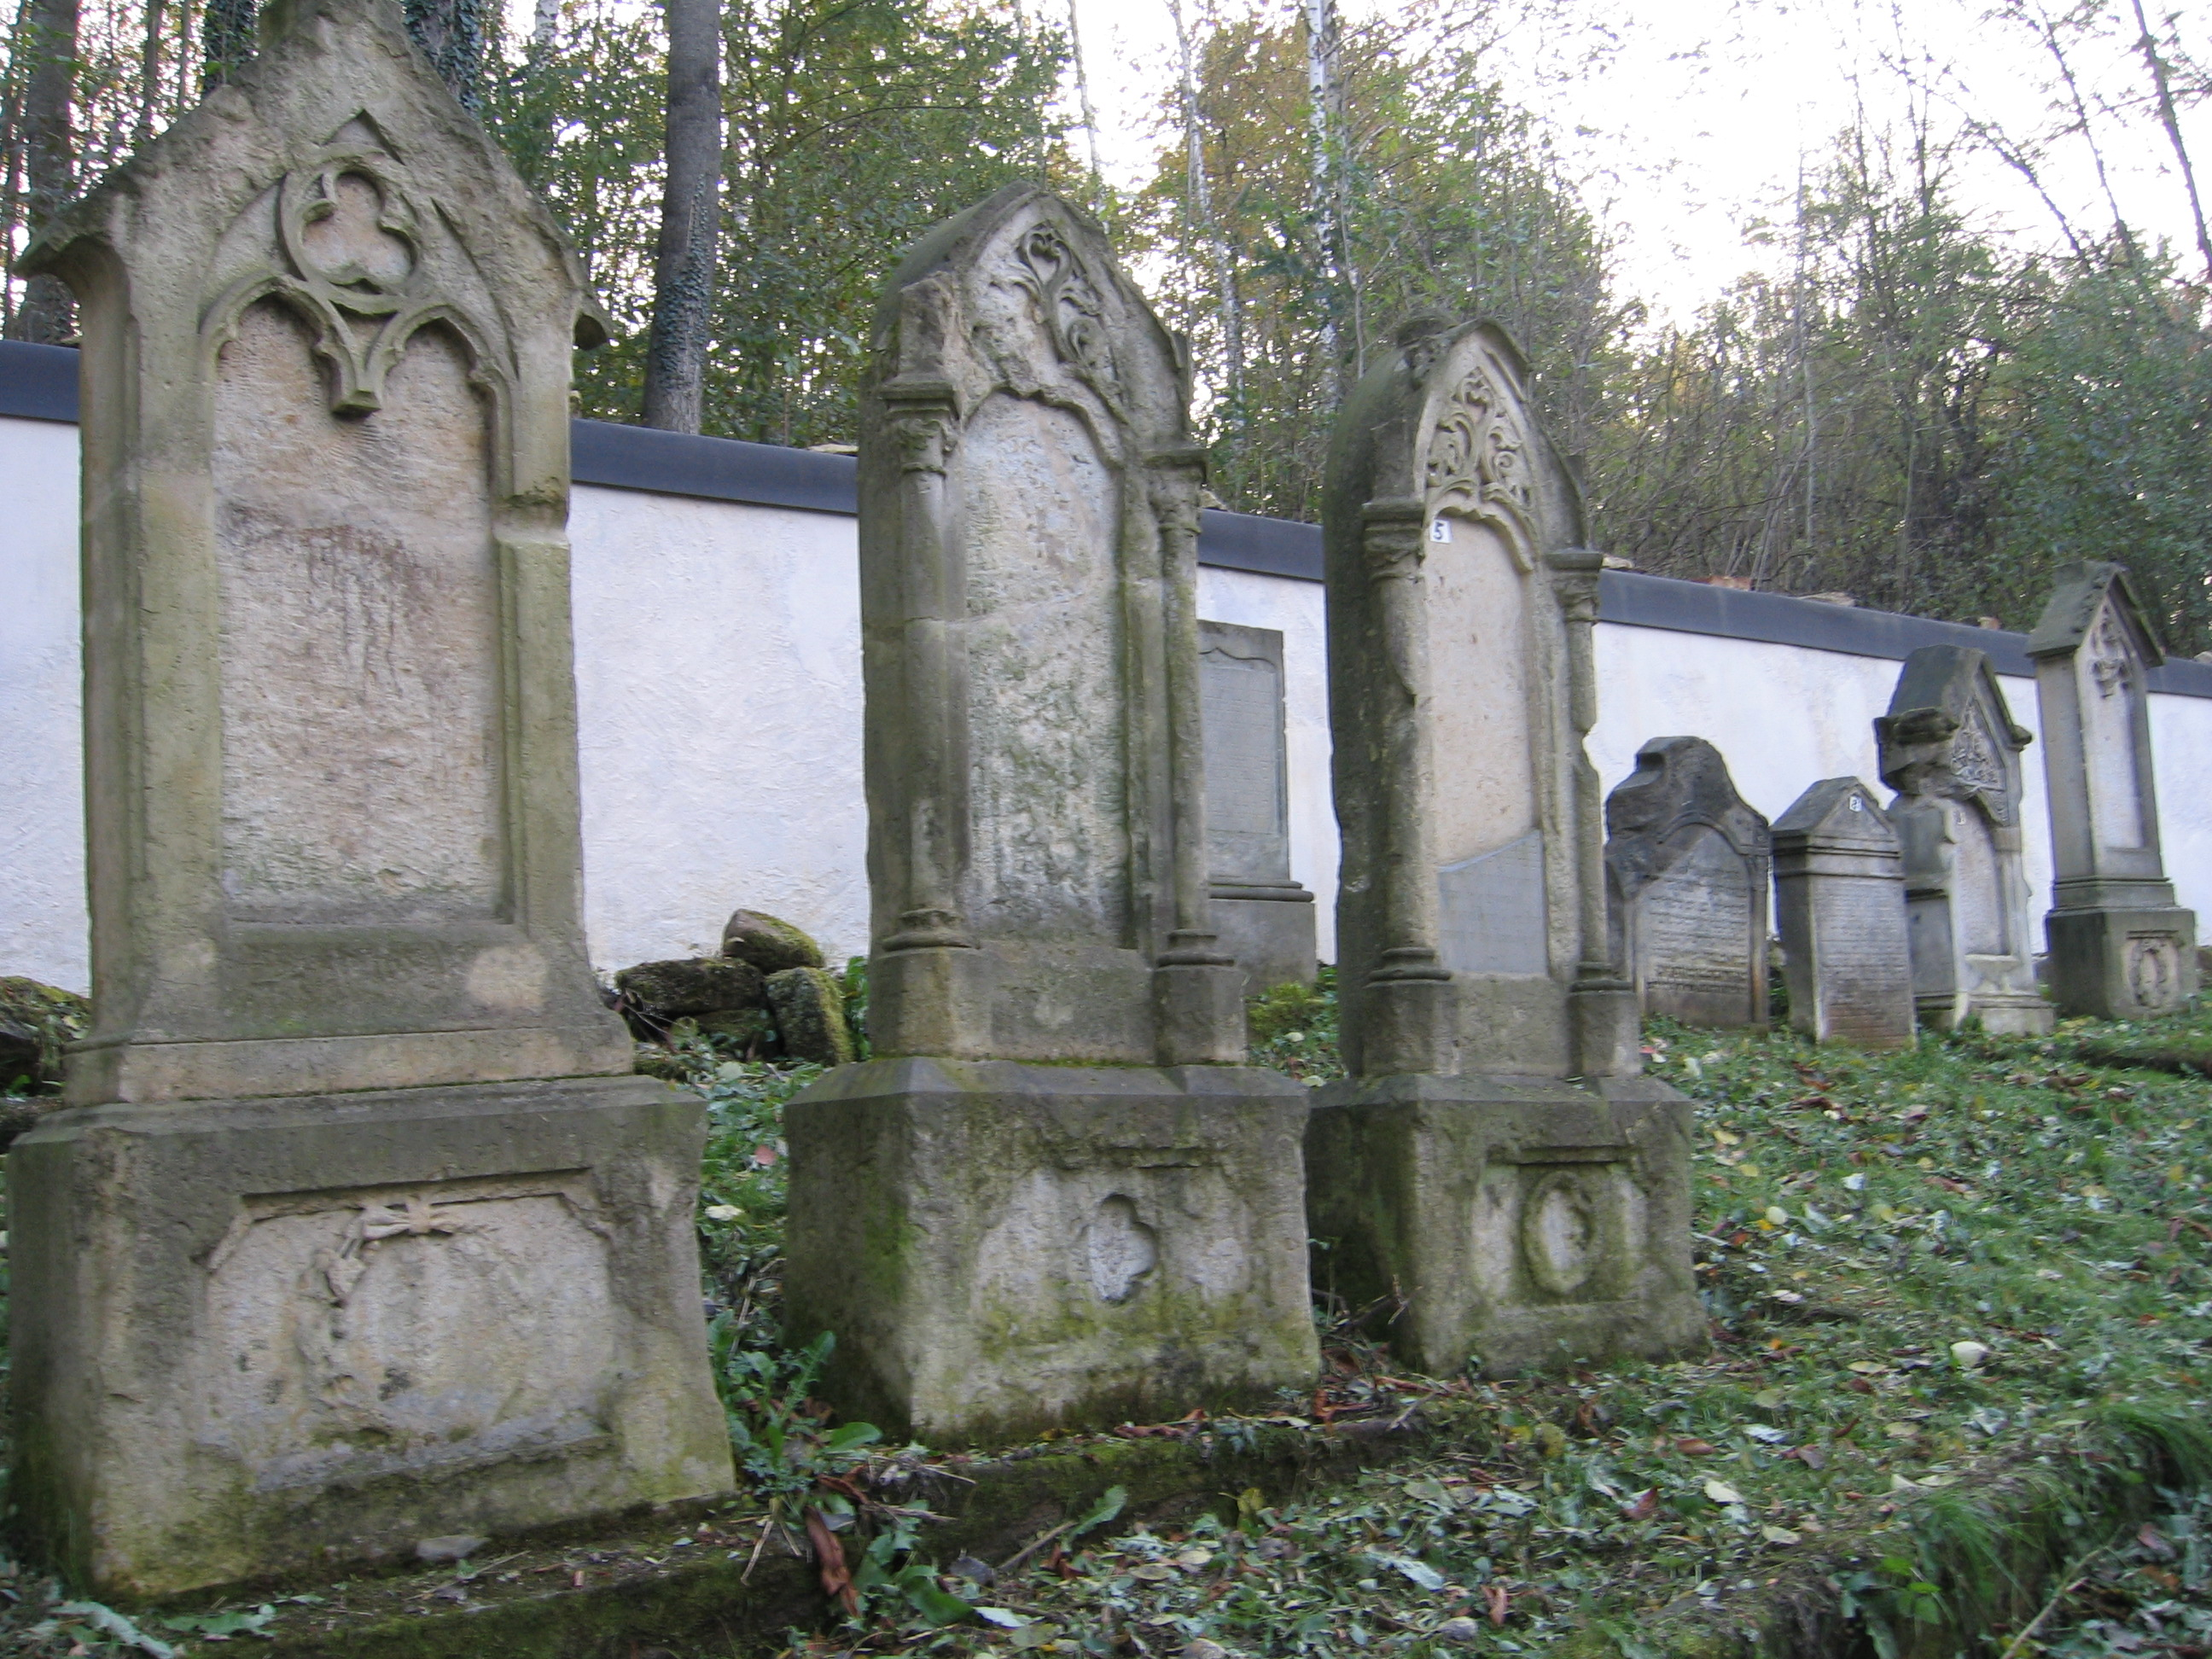 The forest Jewish cemetery in Úštěk